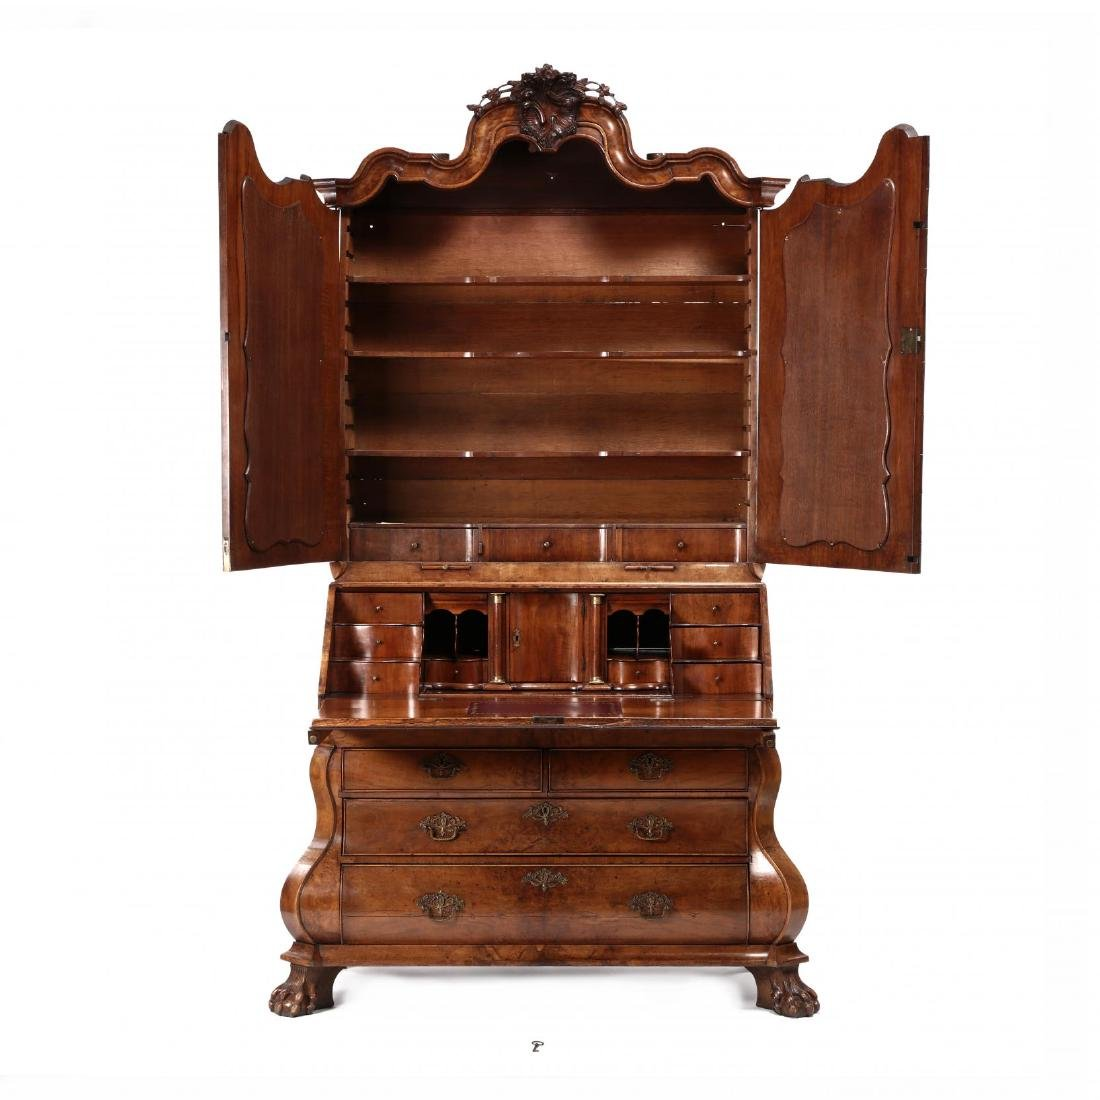 French or Dutch Baroque Bombé Secretaire Bookcase - 2